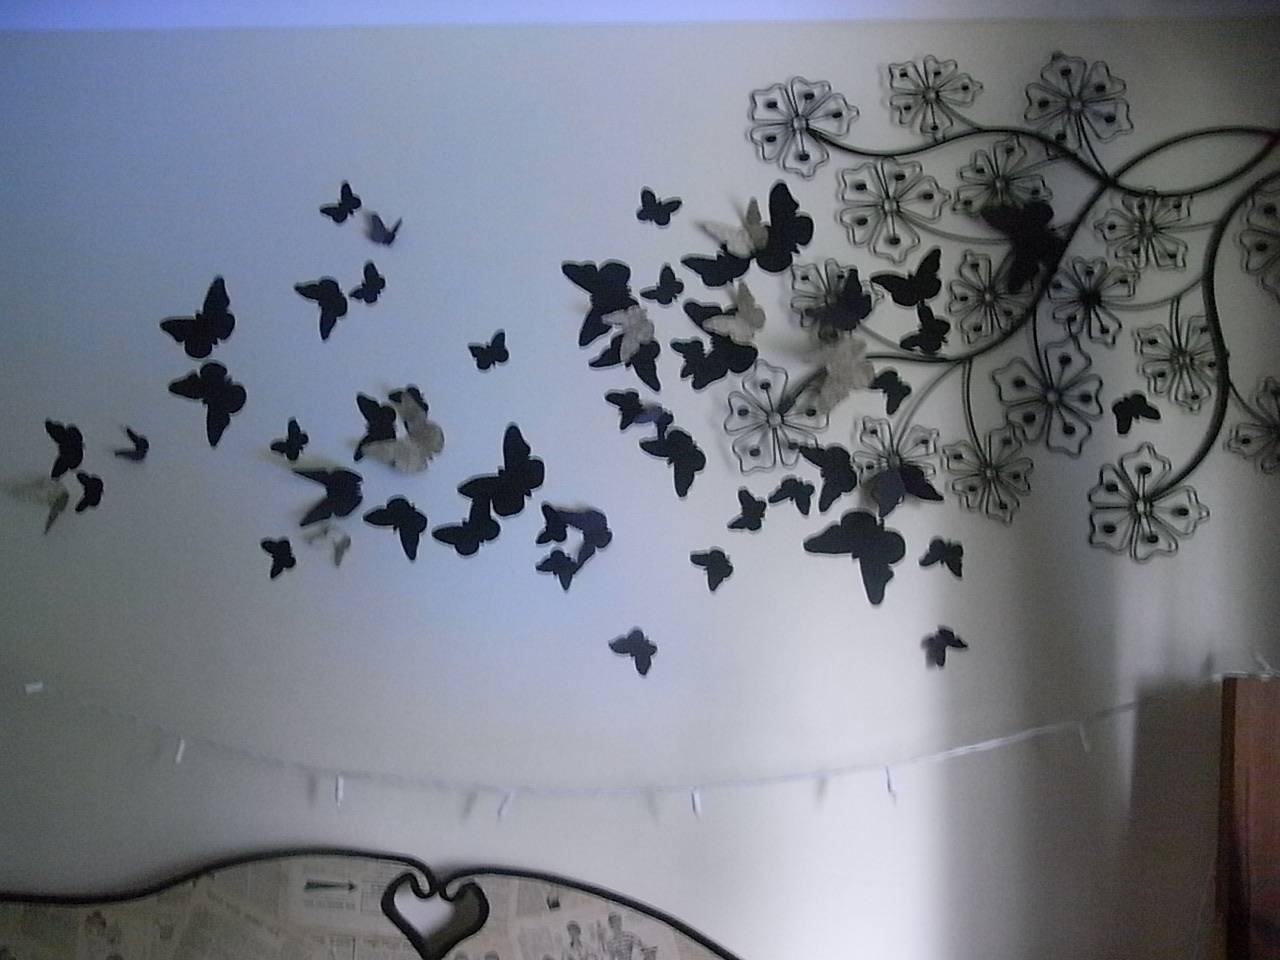 Diy 3D Wall Art Butterflies | Wallartideas Regarding Recent Diy 3D Wall Art Butterflies (View 4 of 20)